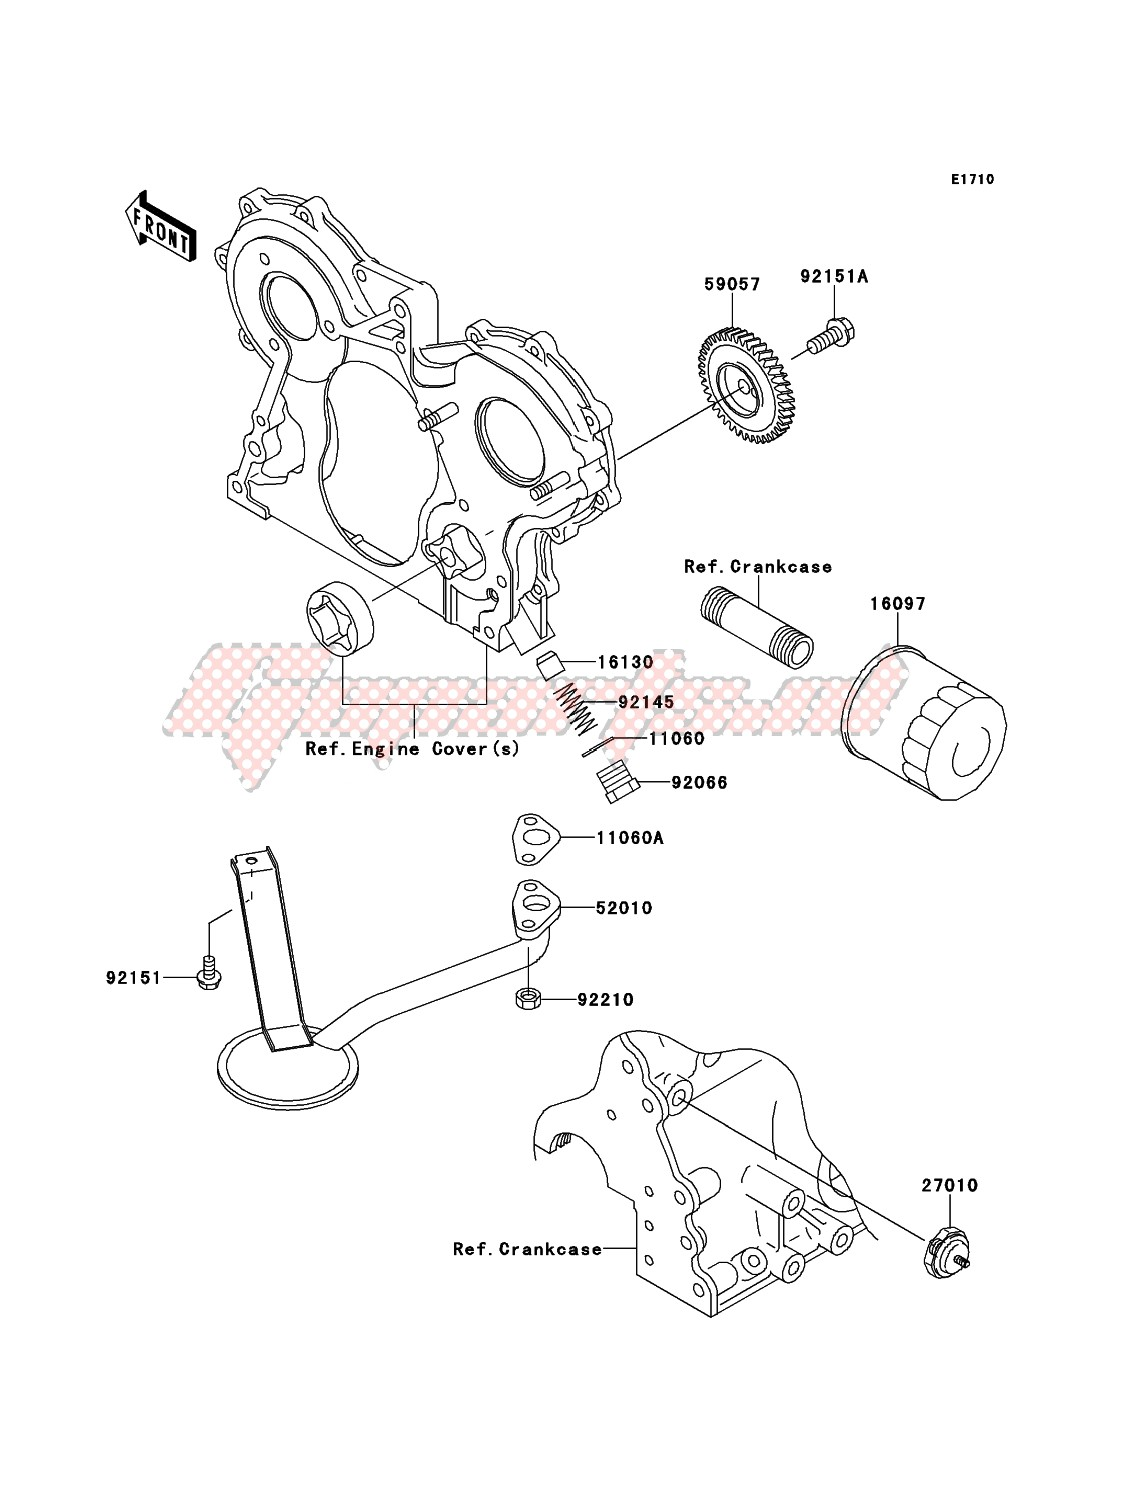 Engine-Oil Pump